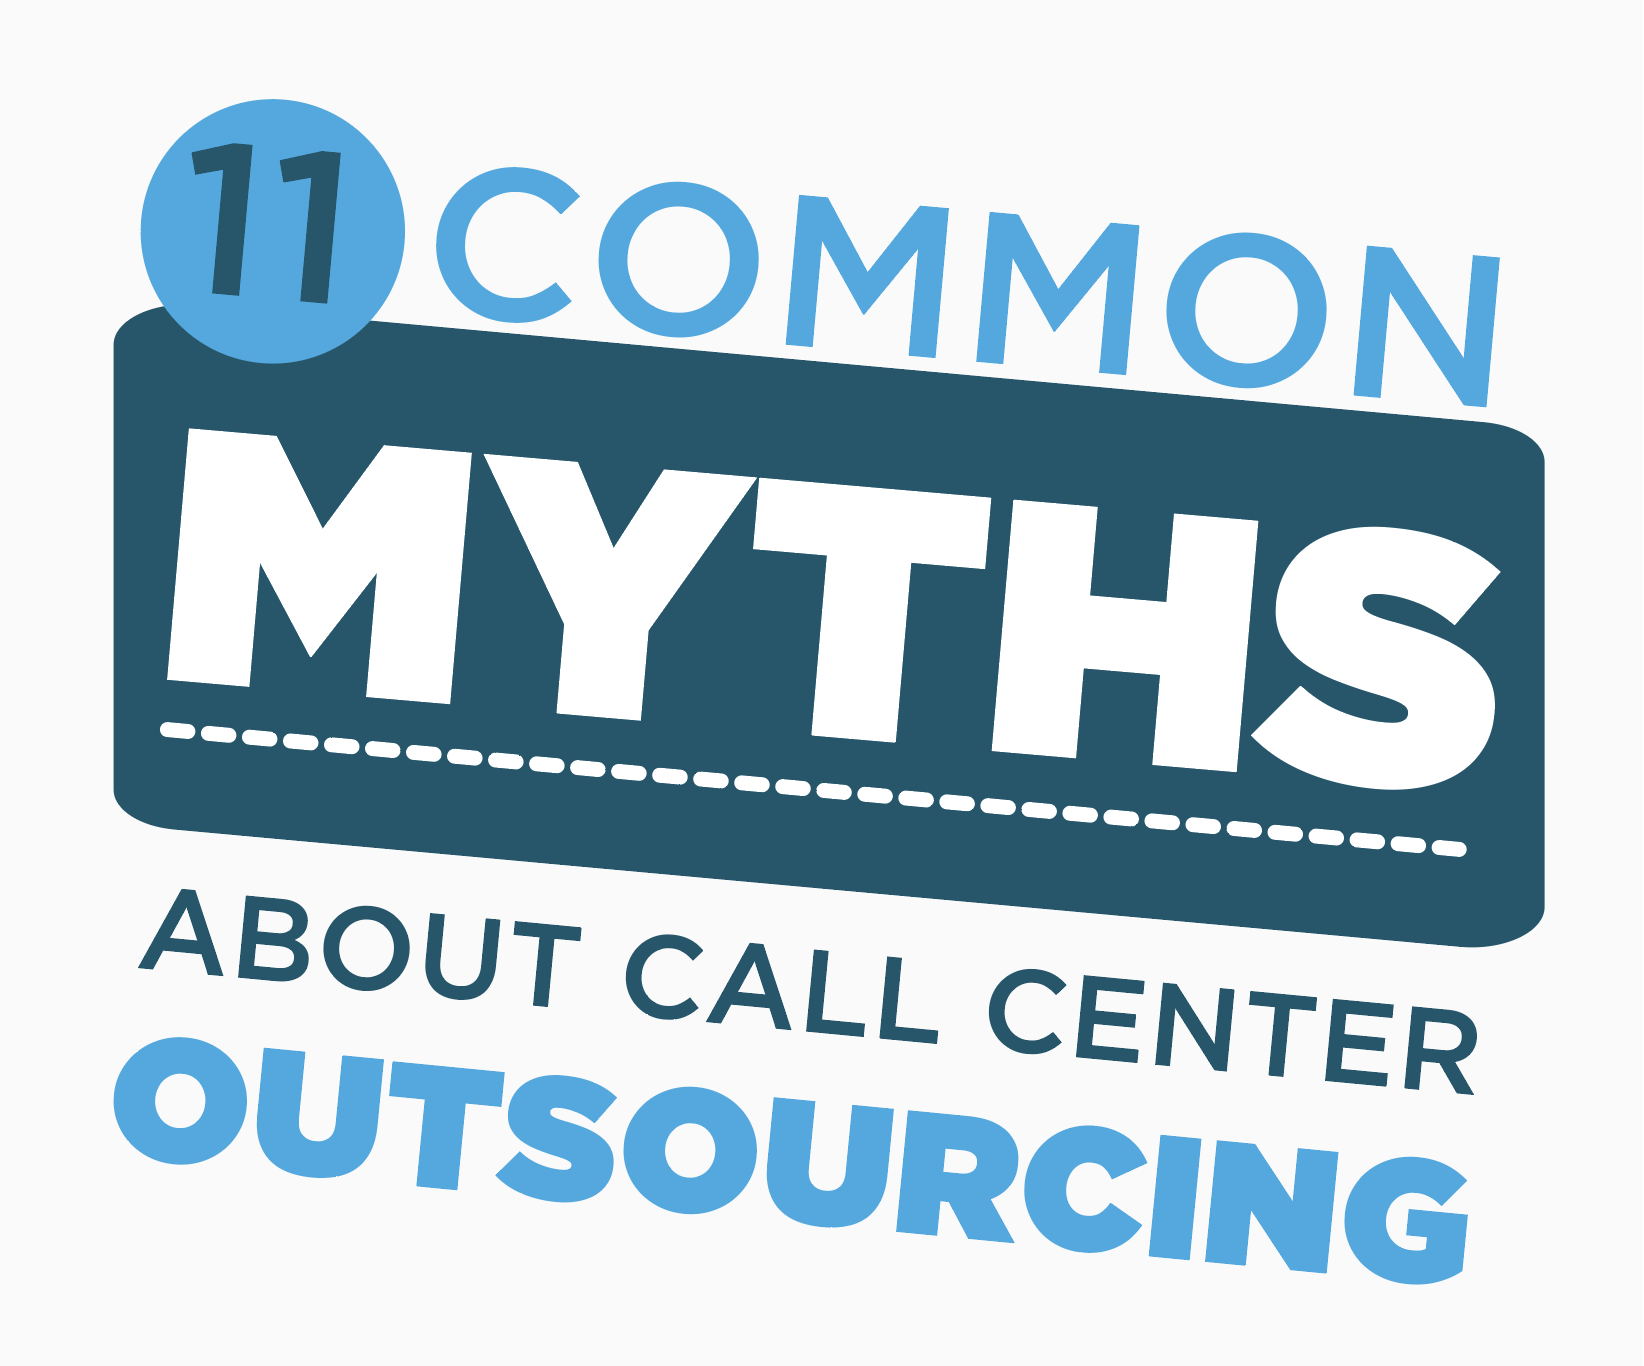 11 Common Myths About Contact Center Outsourcing